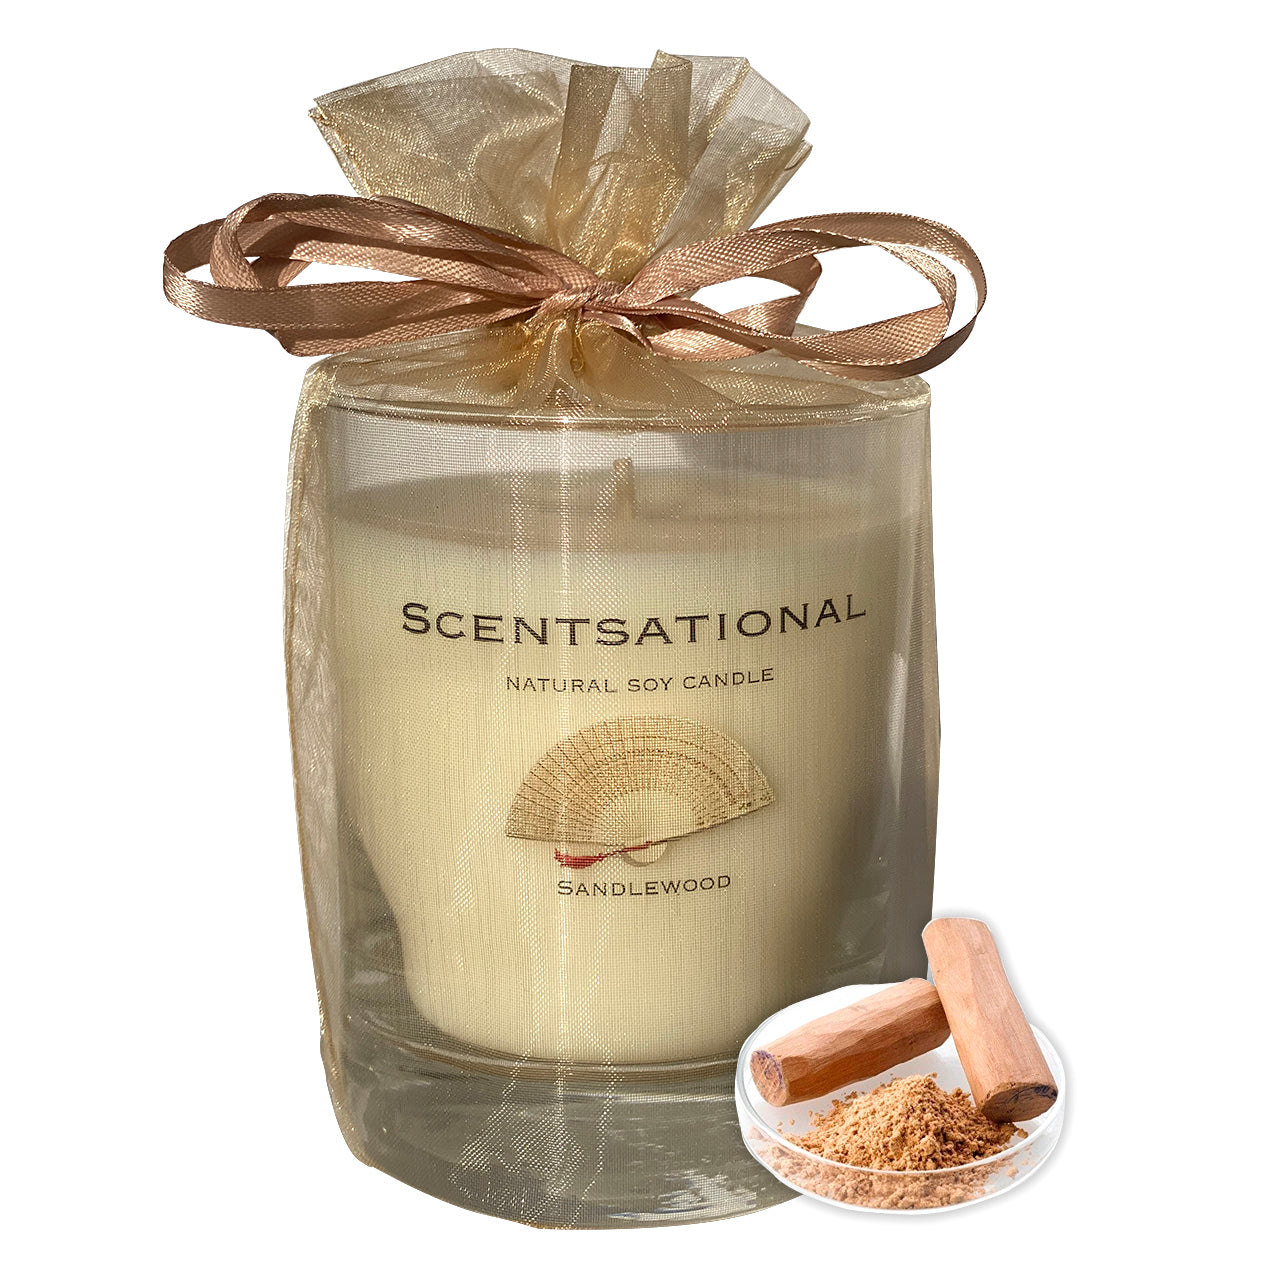 Scented Soy Candles SANDALWOOD (11 oz) eliminates smoke, household and pet odors. - Cigar boulevard